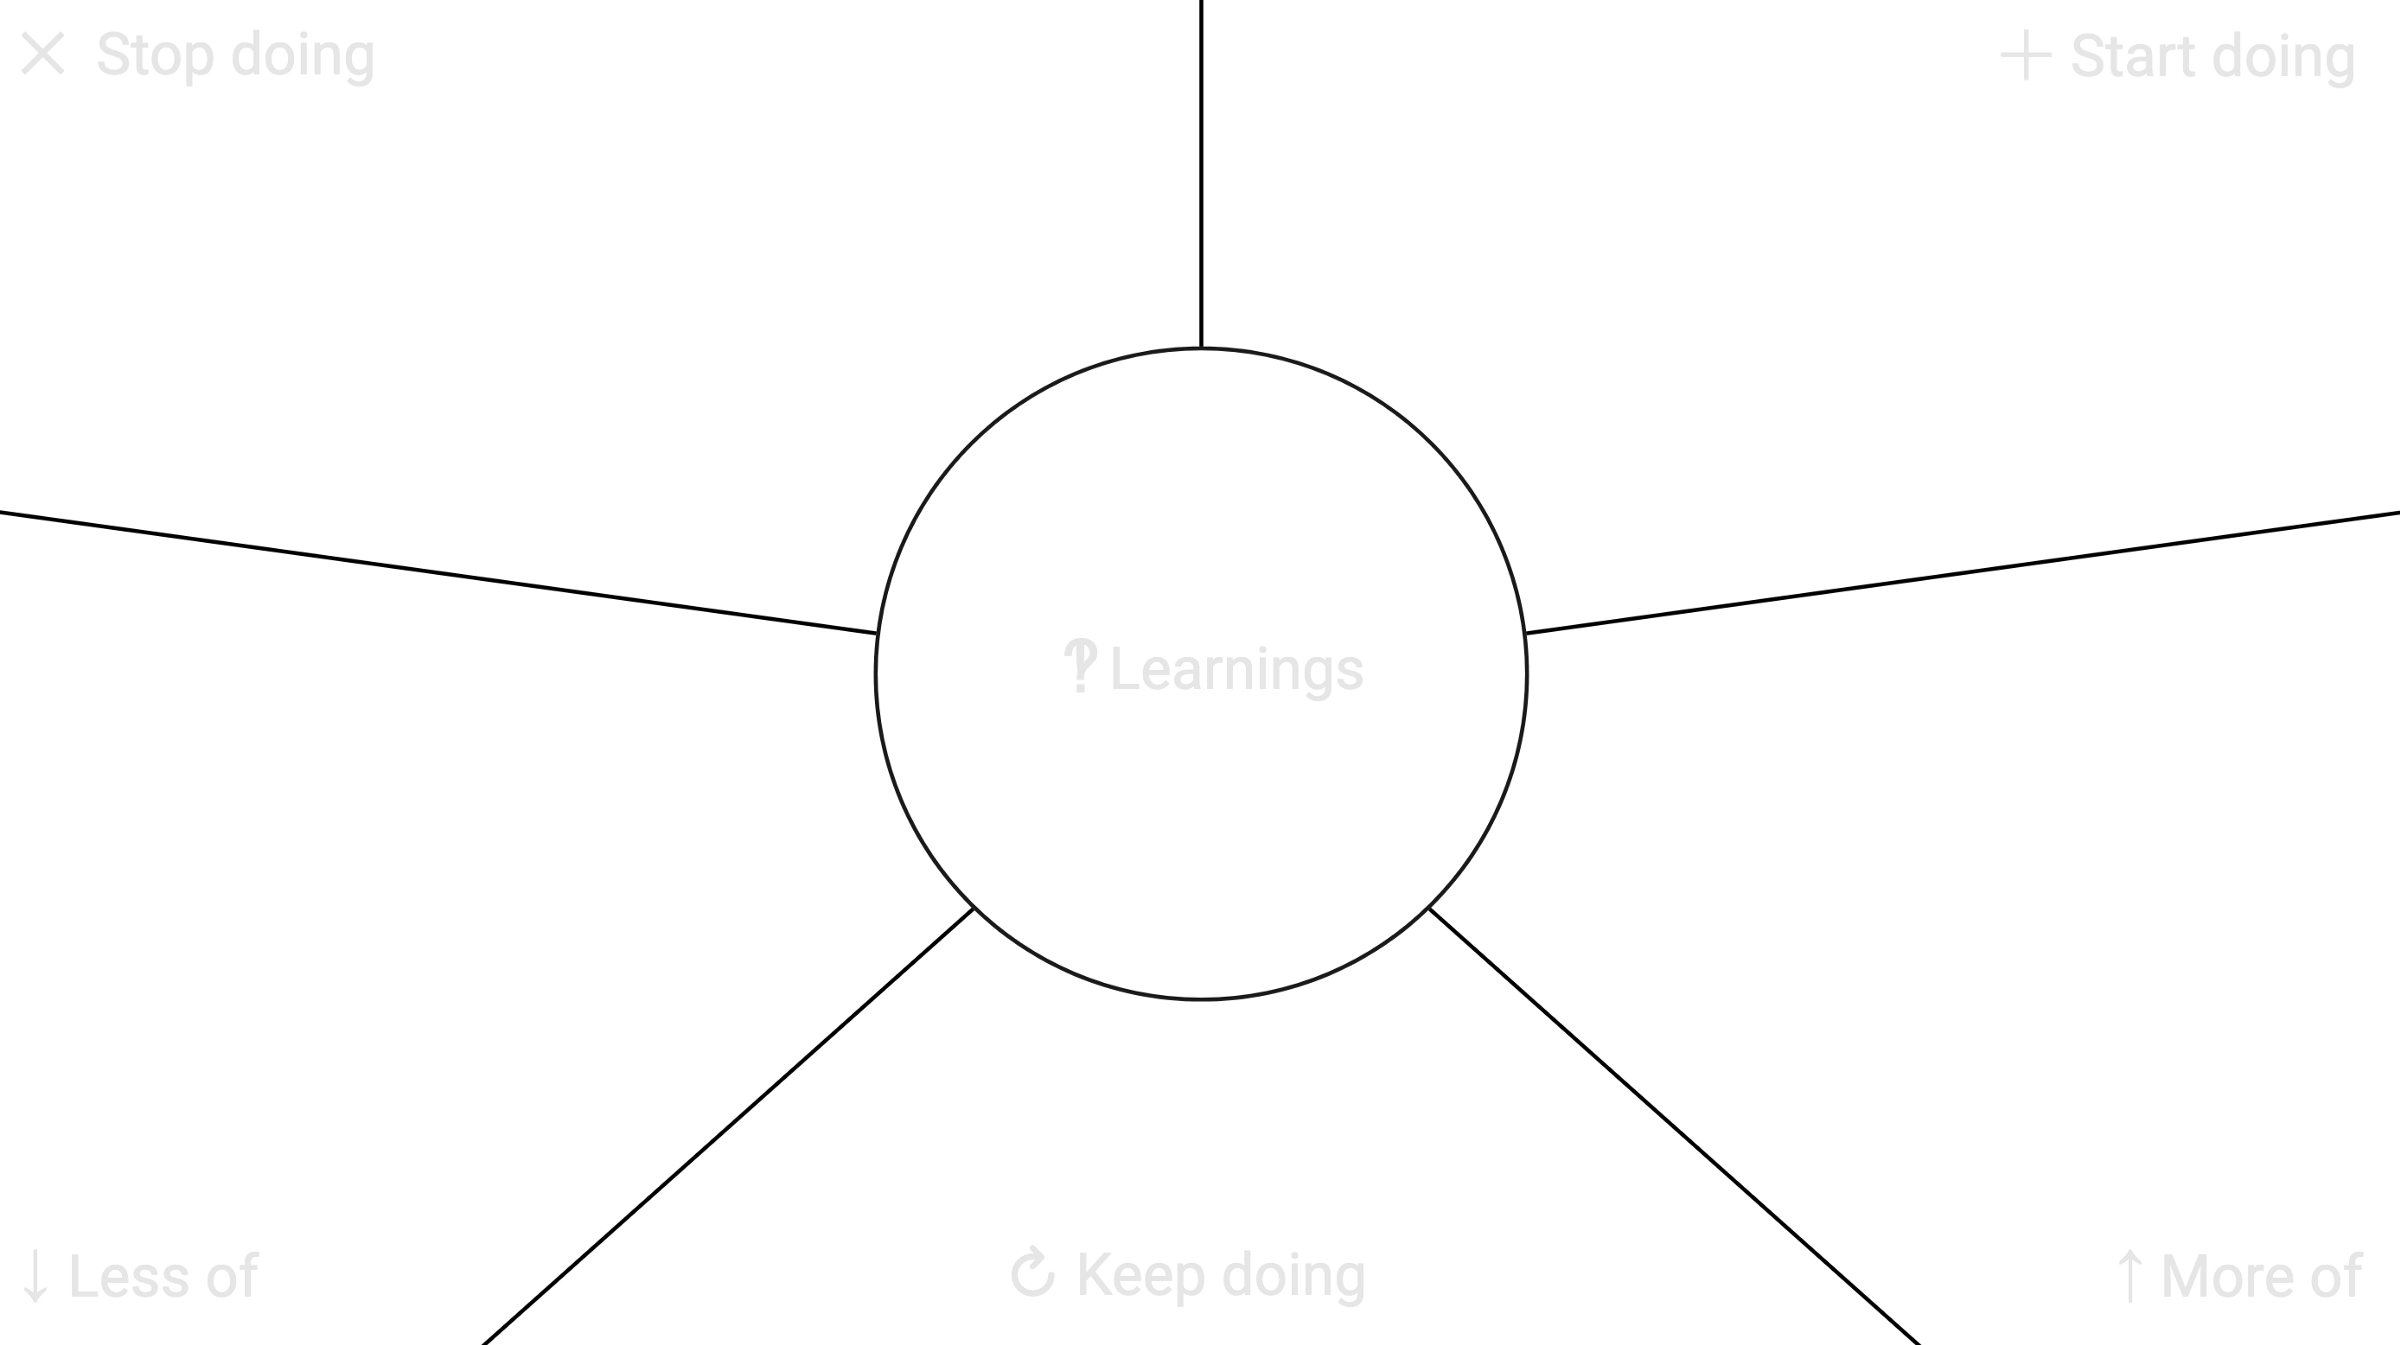 starfish diagram with leanrings in middle